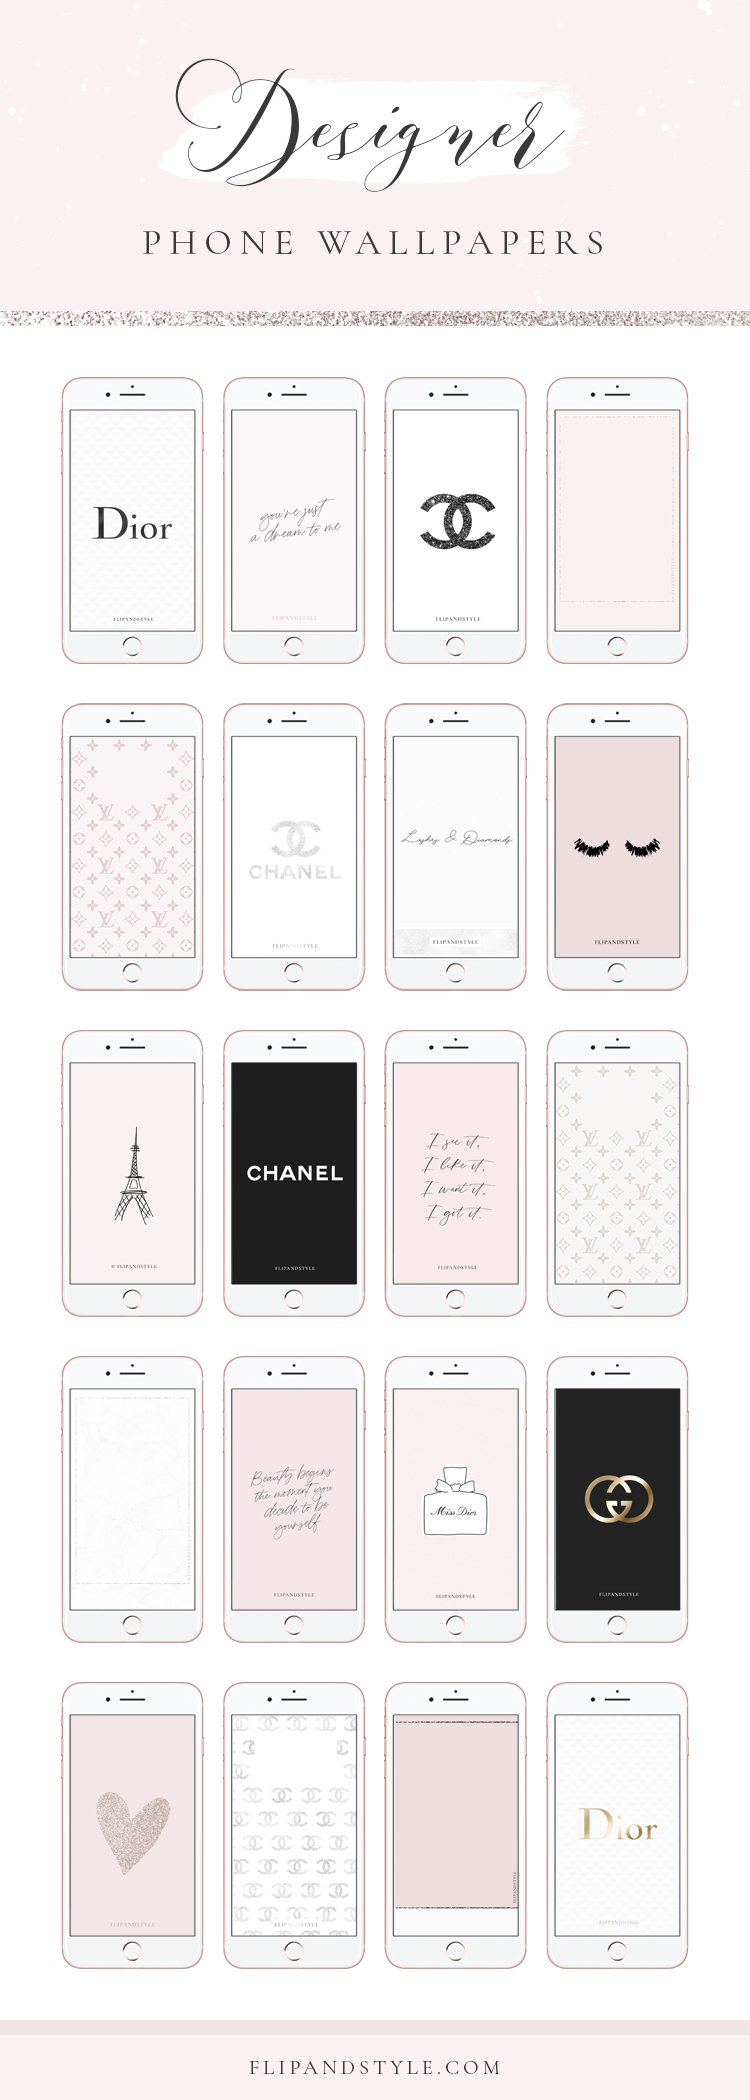 Free Designer Wallpapers - Phone Backgrounds by FLIPANDSTYLE